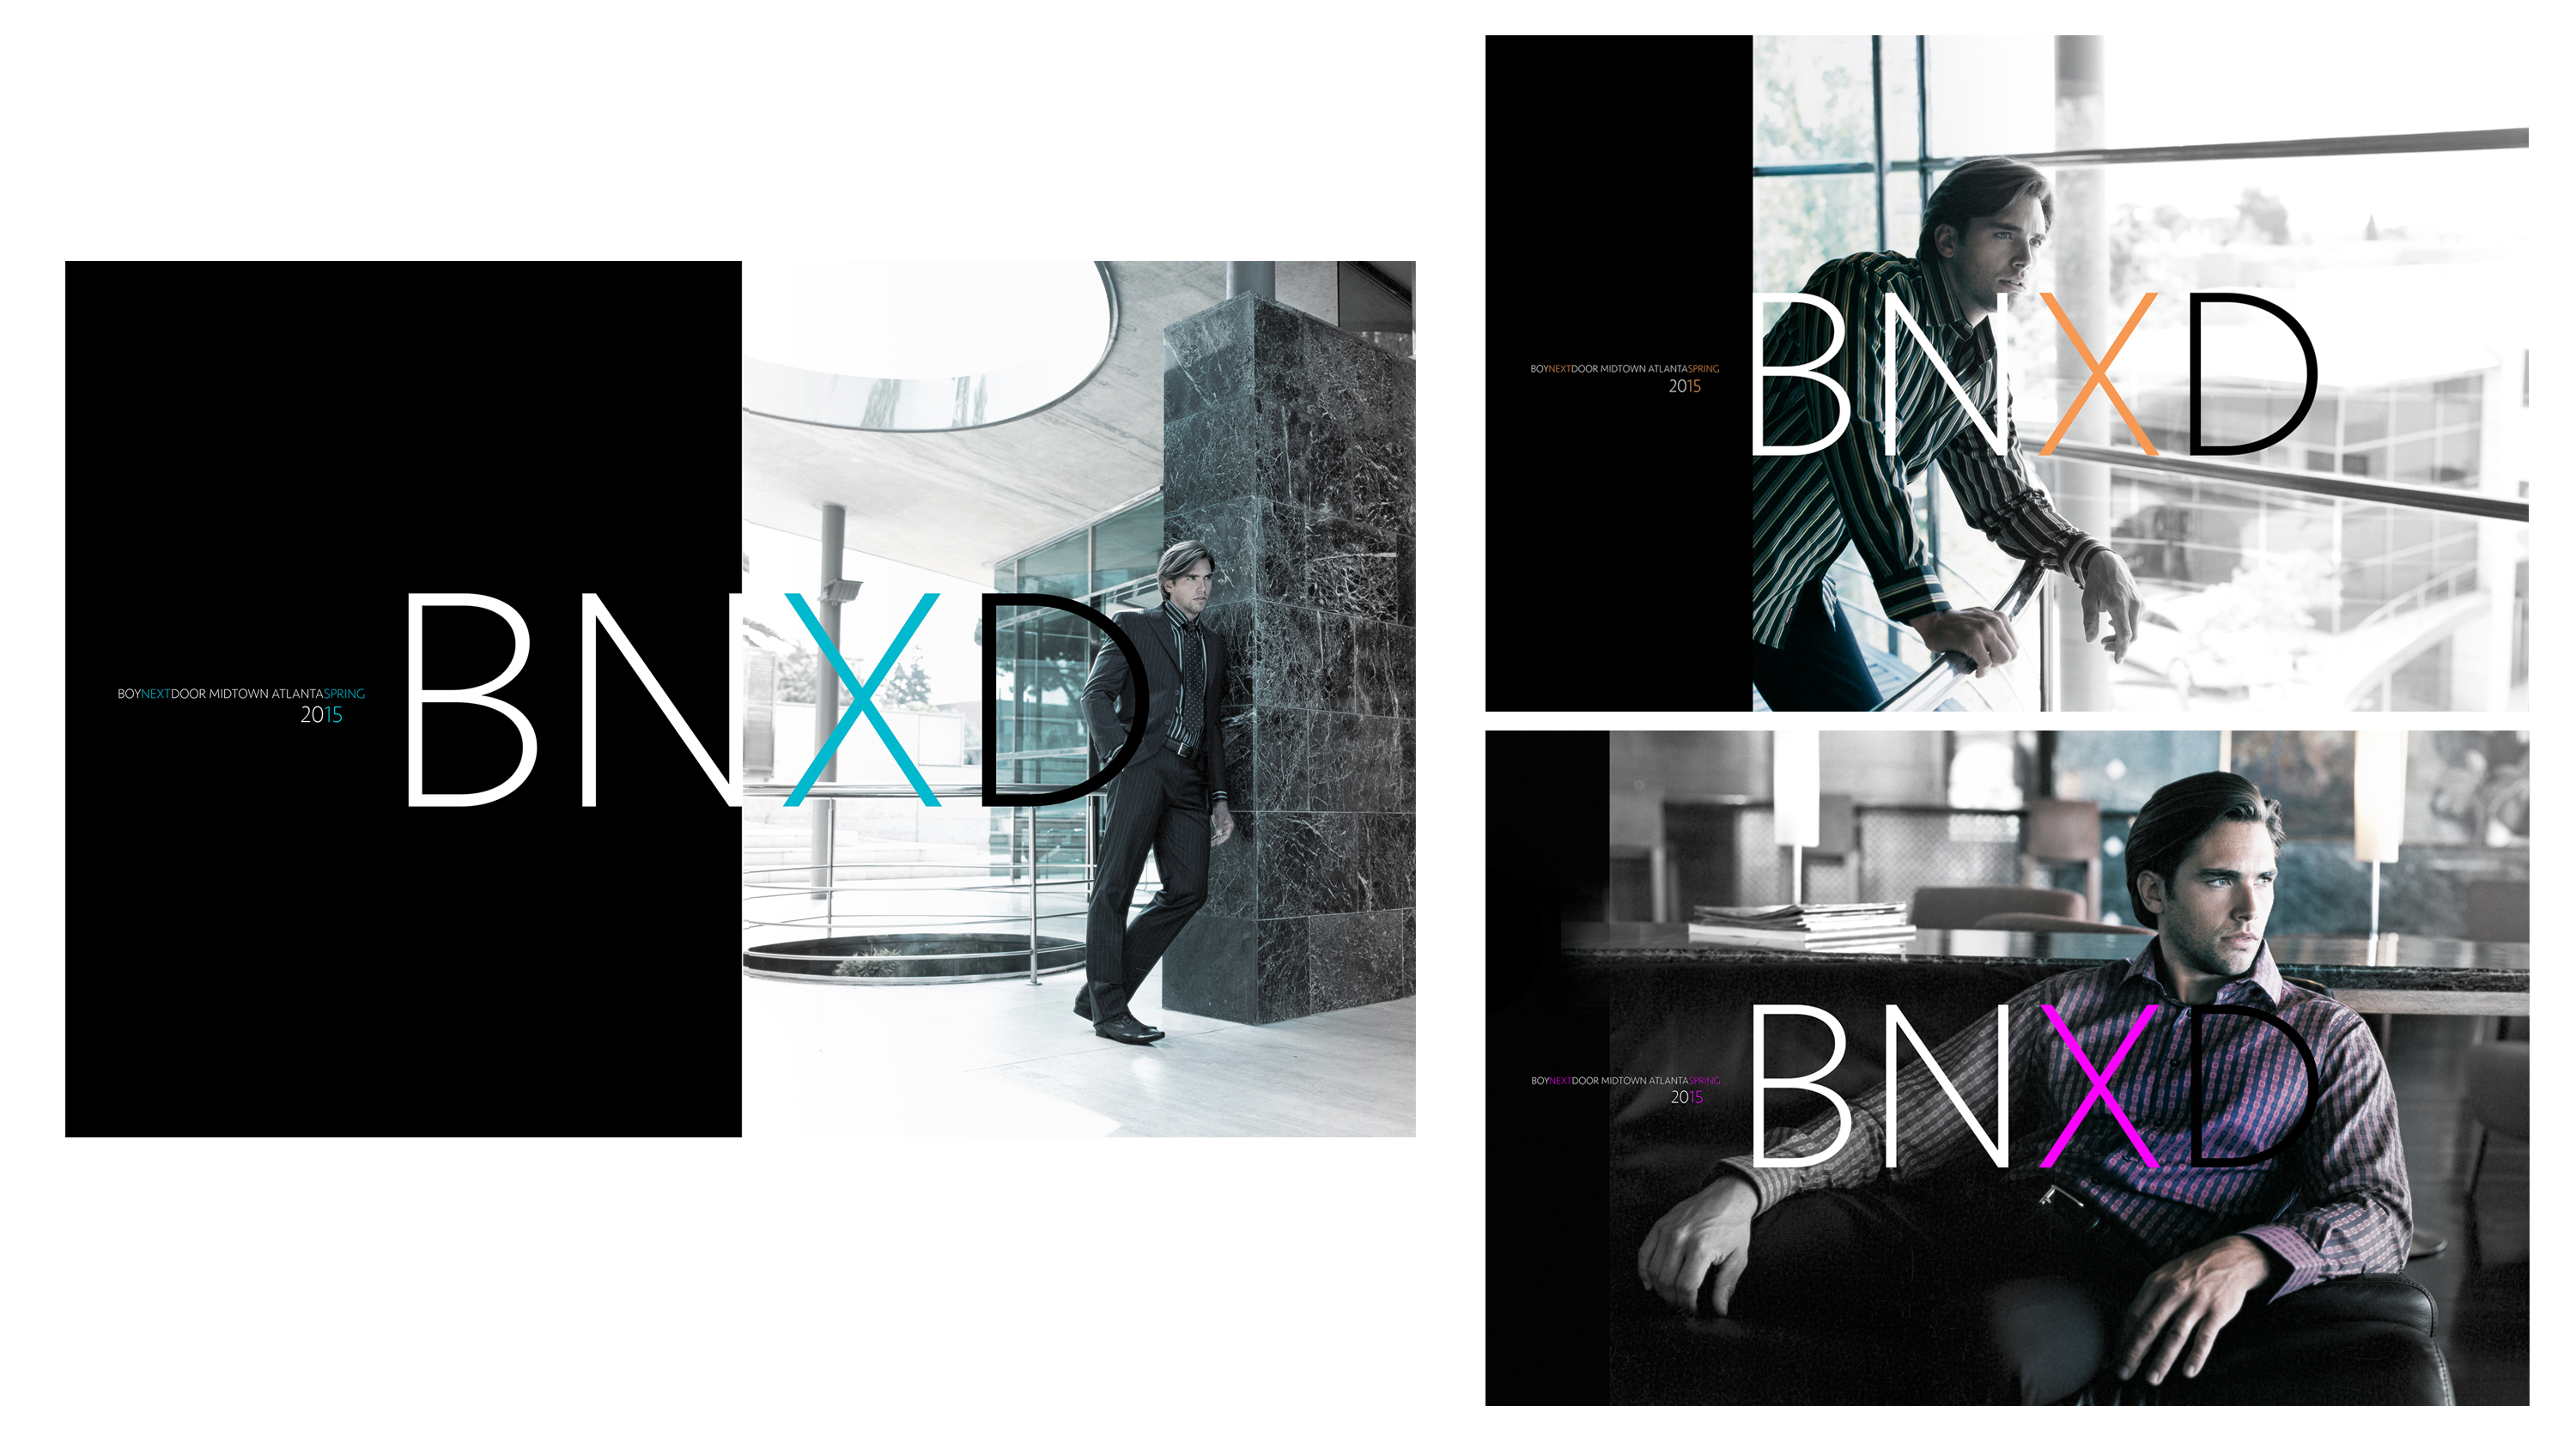 BNXD, Boy Next Door Men's Apparel Store